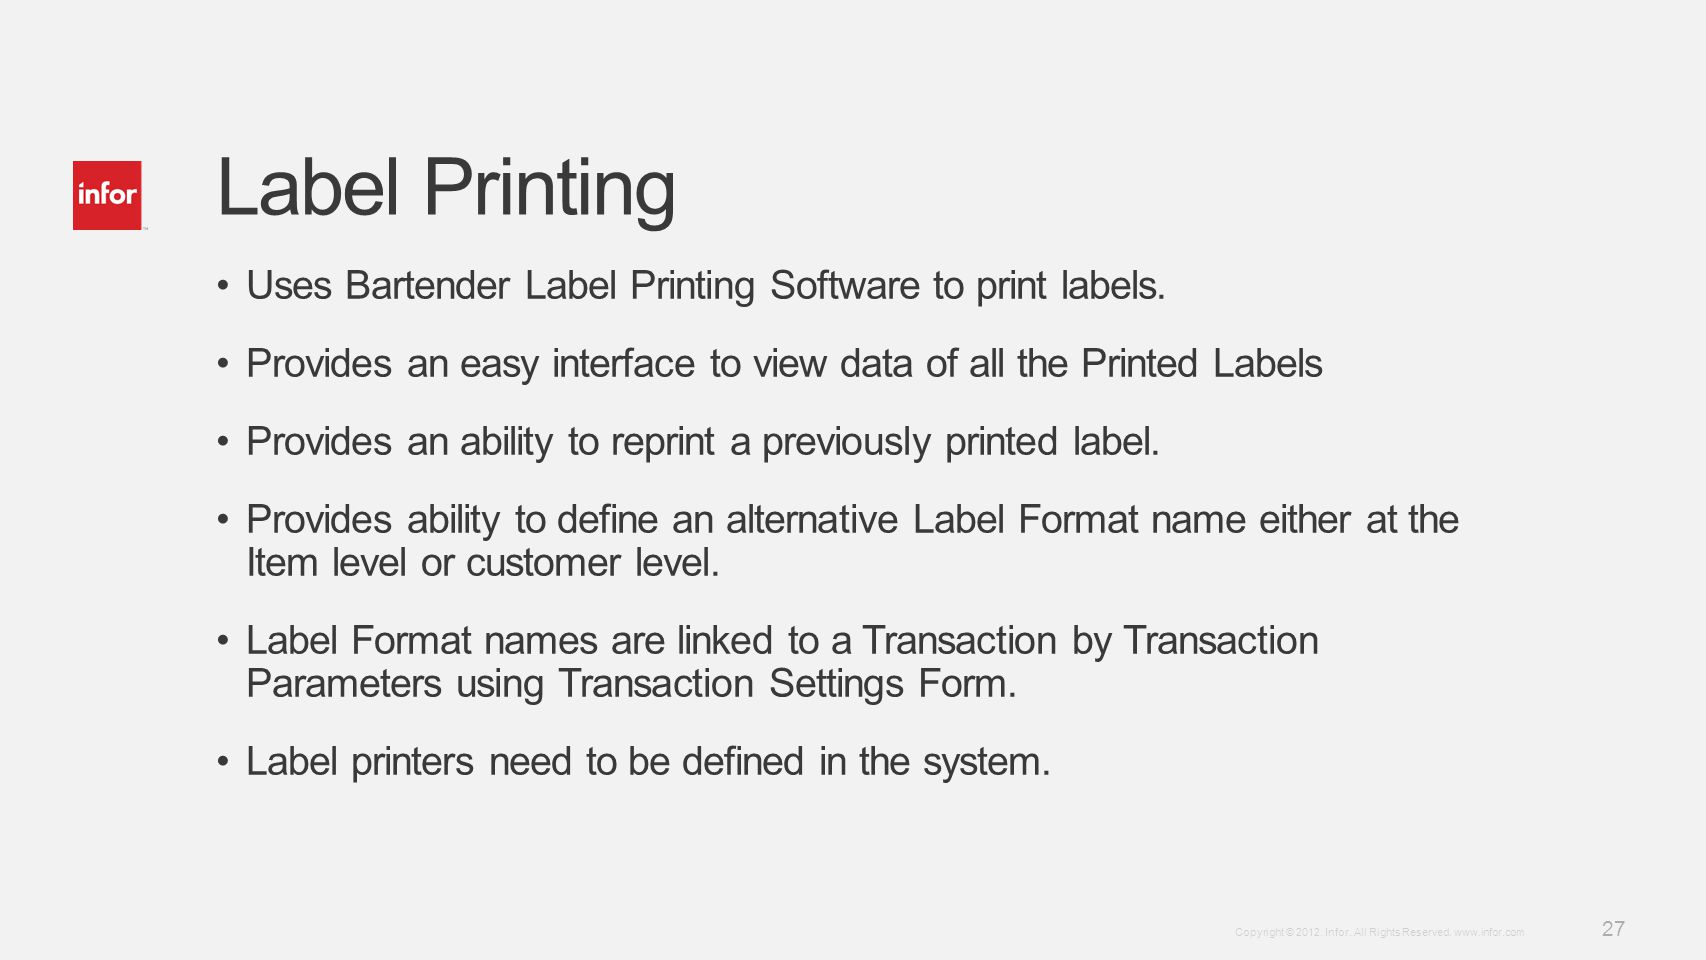 Label Printing Uses Bartender Label Printing Software to print labels.